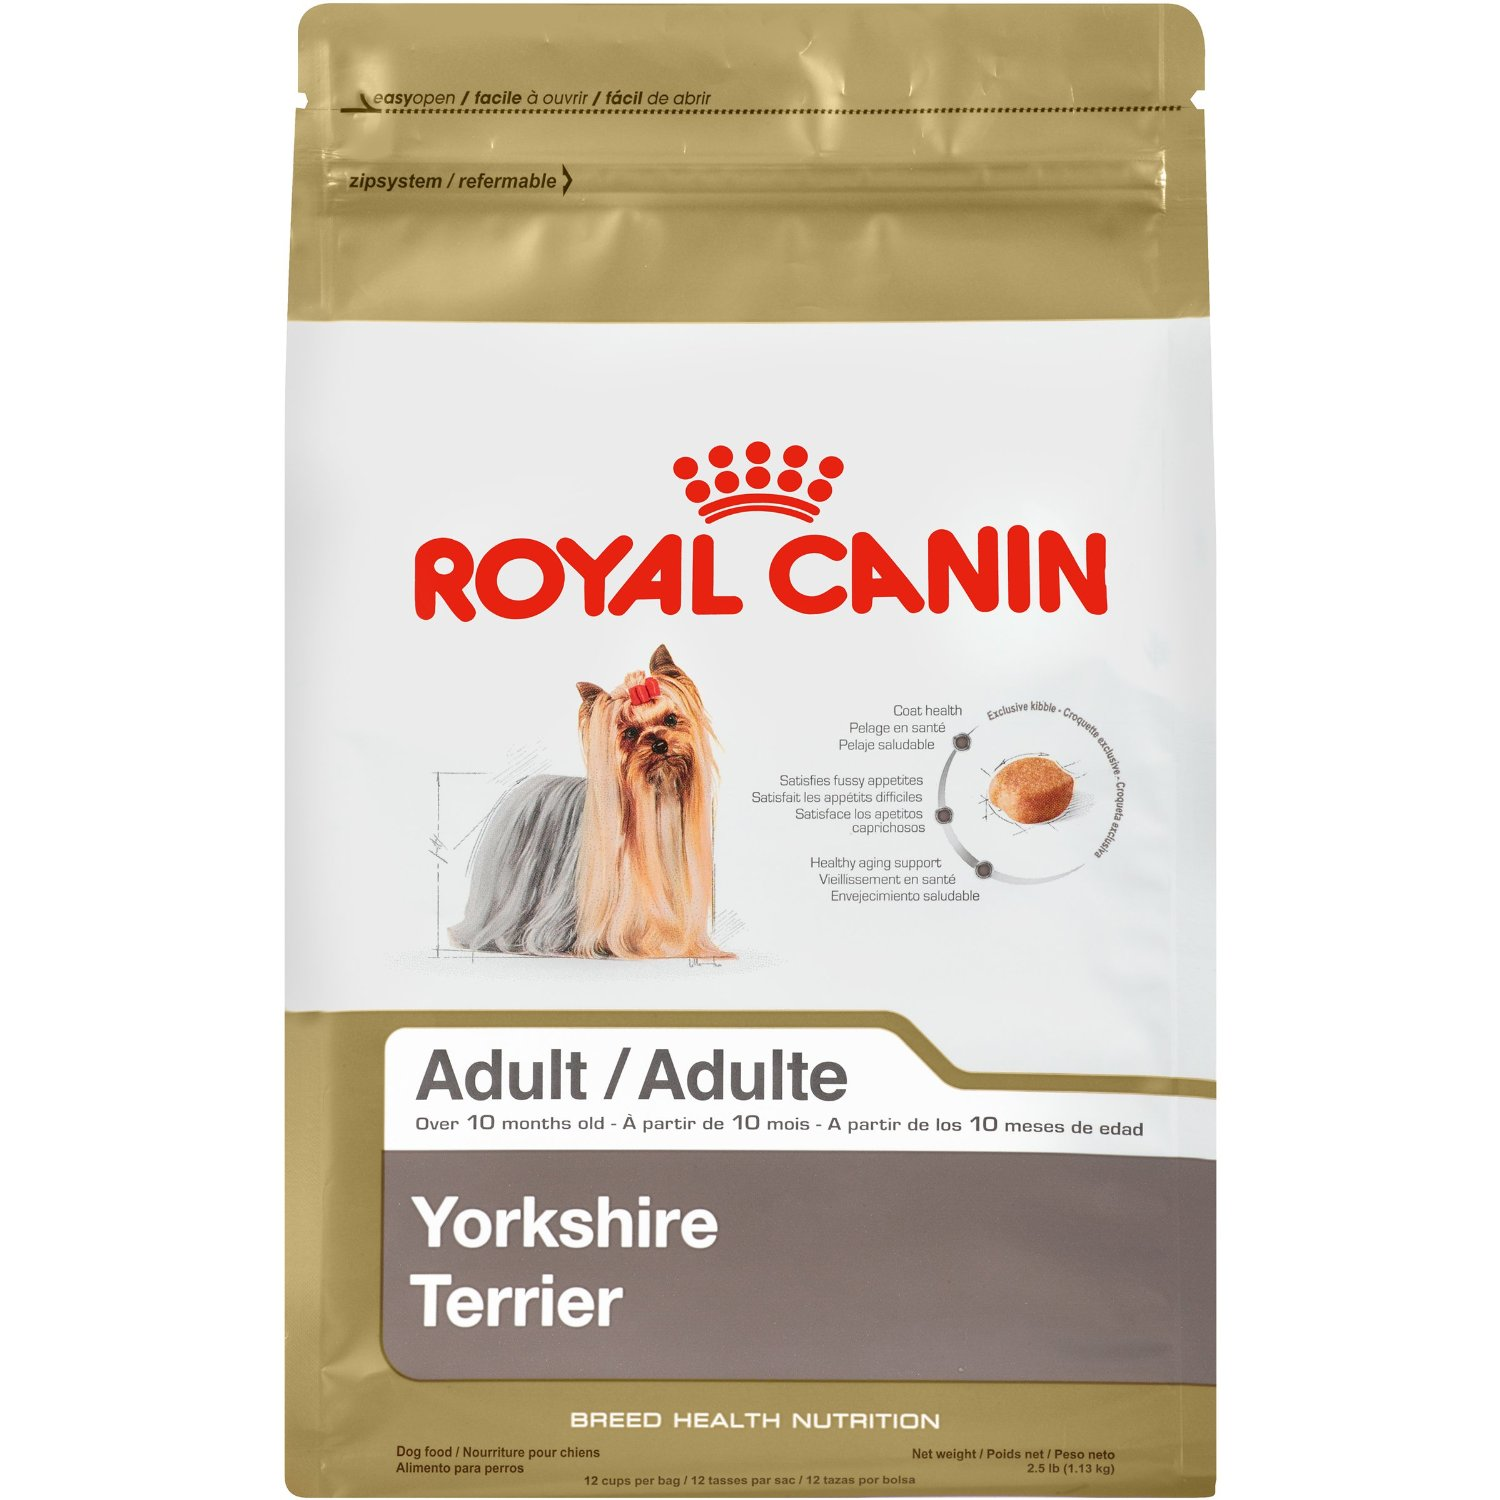 Royal Canin Terrior Dog Food